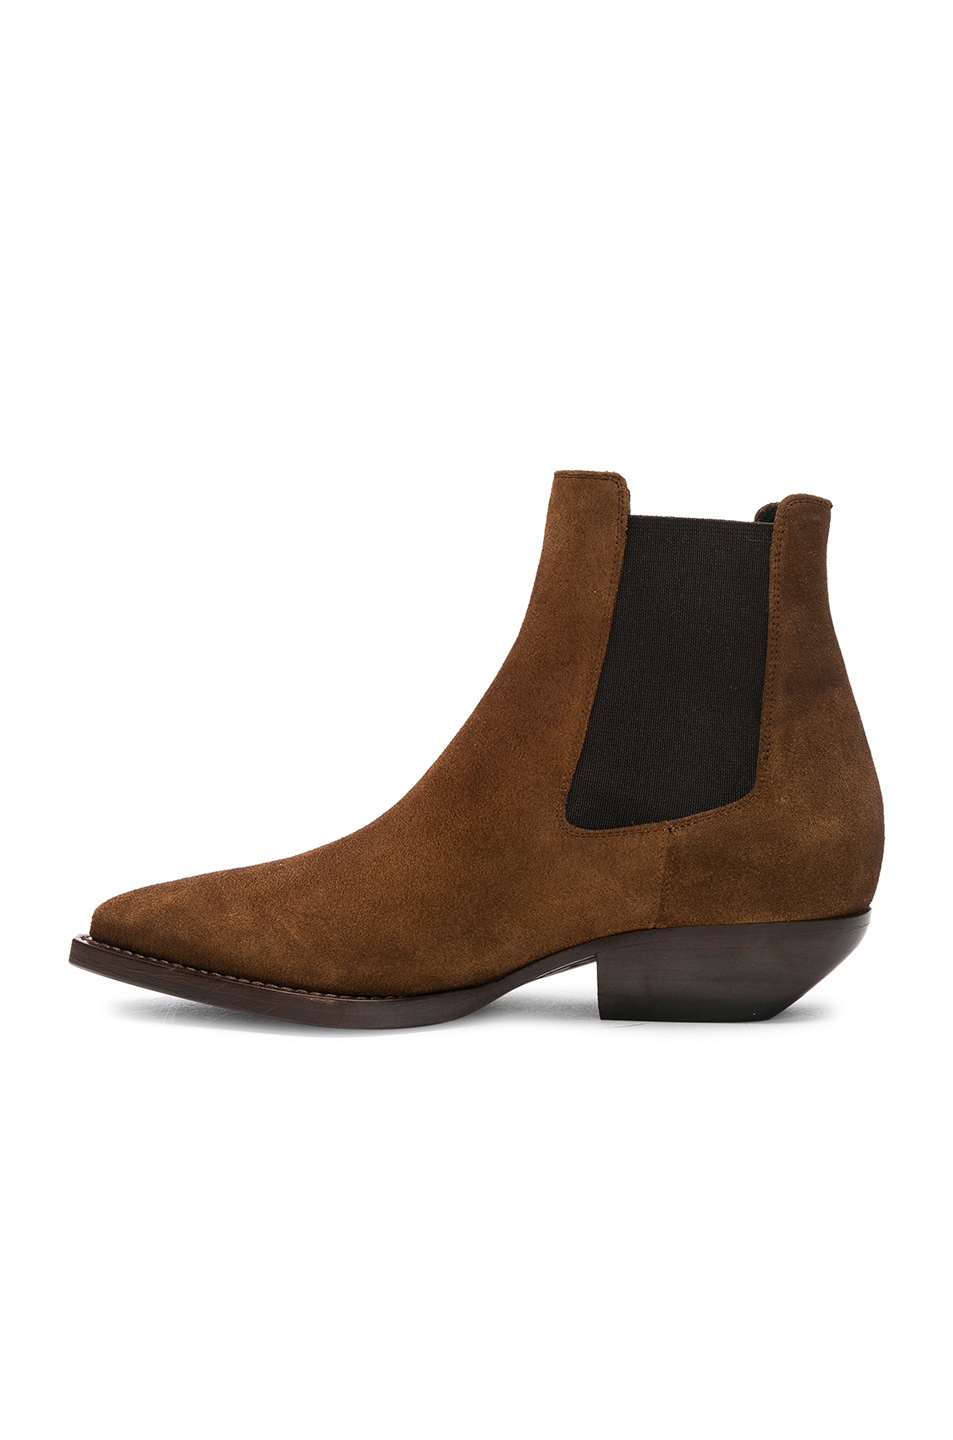 Image 5 of Saint Laurent Suede Theo Chelsea Boots in Caramel